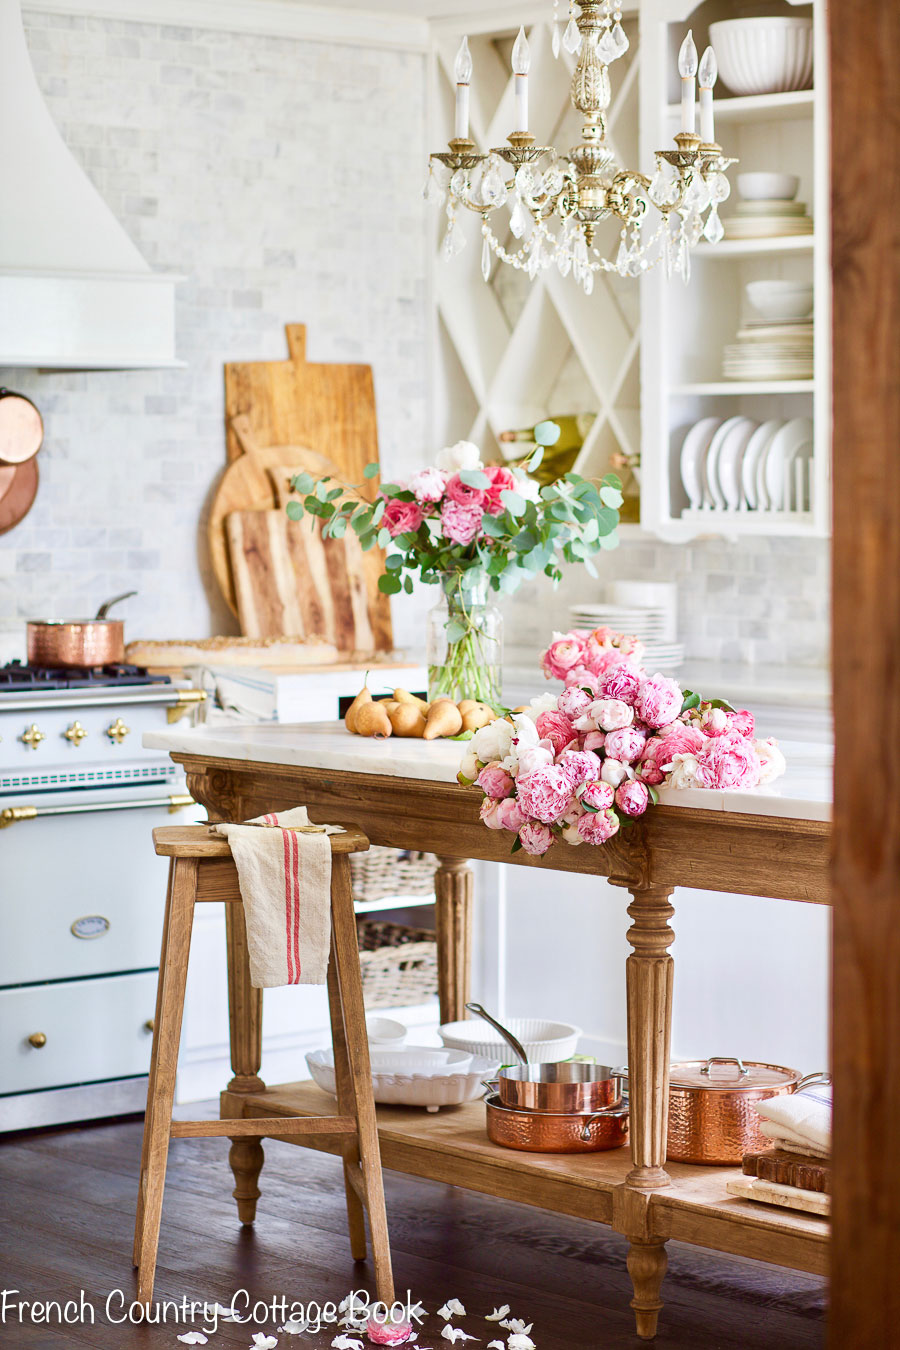 French Country Kitchen   French Country Cottage